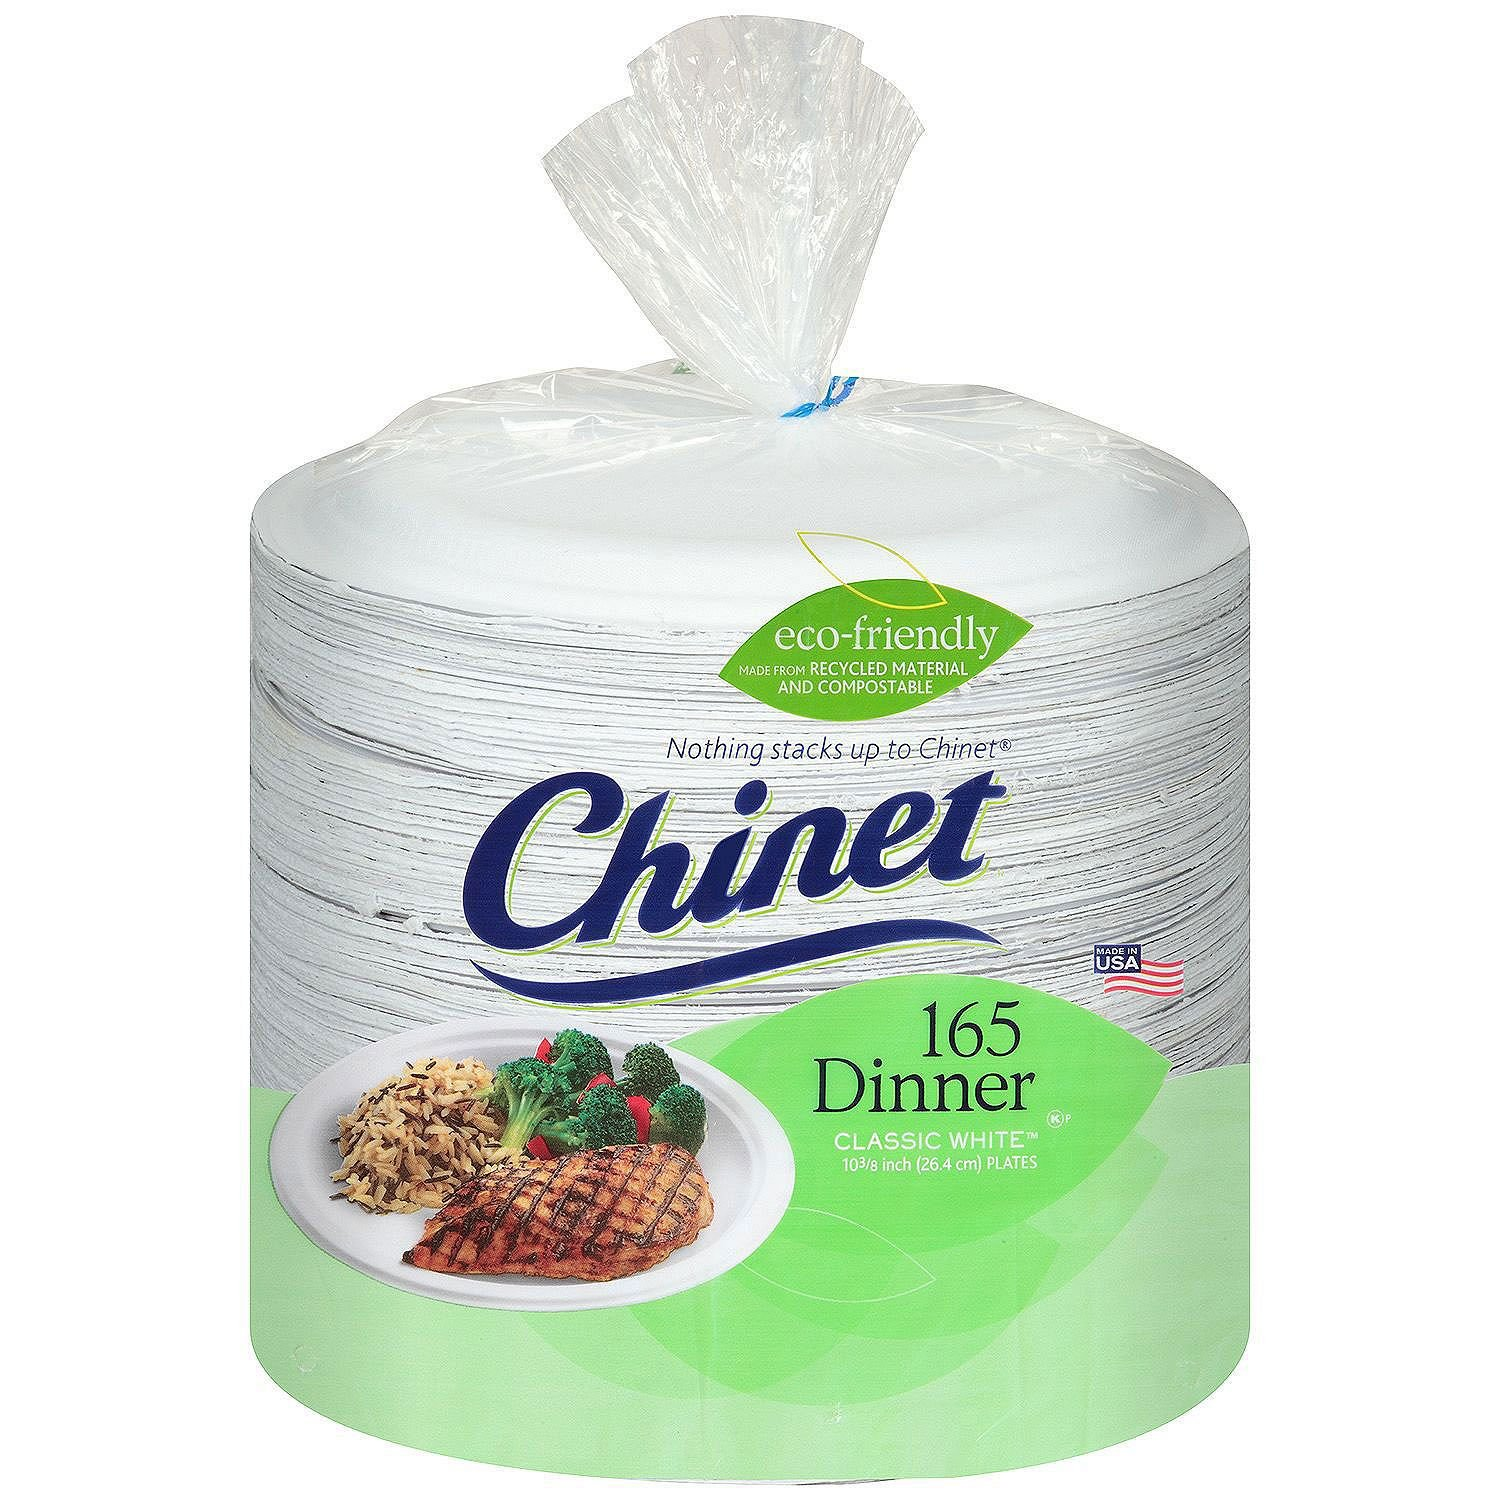 Chinet - Paper Dinner Plates - 165 ct. by Chinet